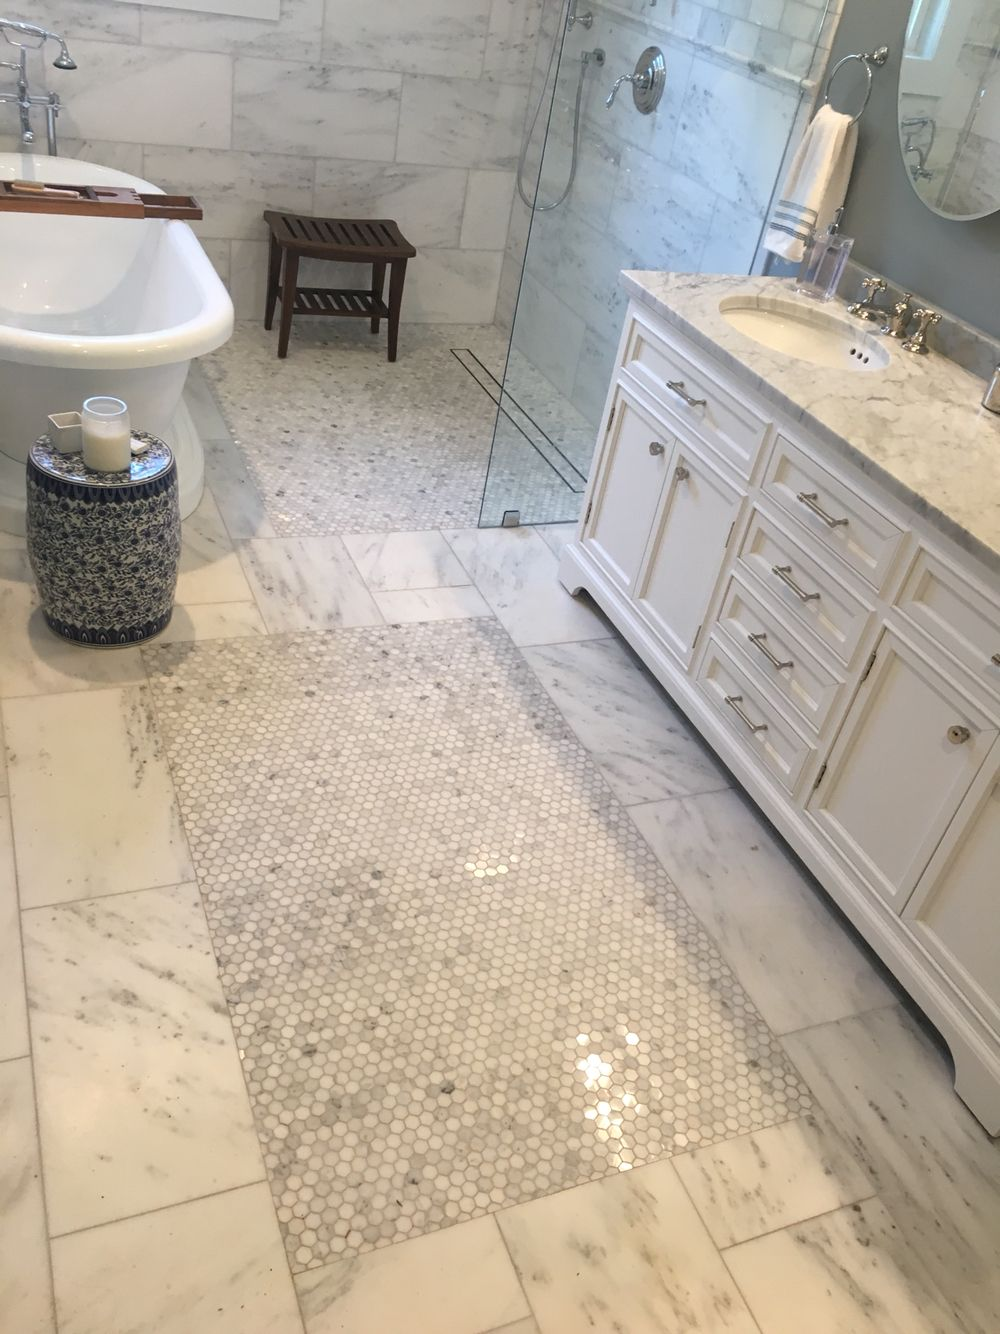 Mosaic rug pattern Curbless Zero entry shower http://imgtile.com ...